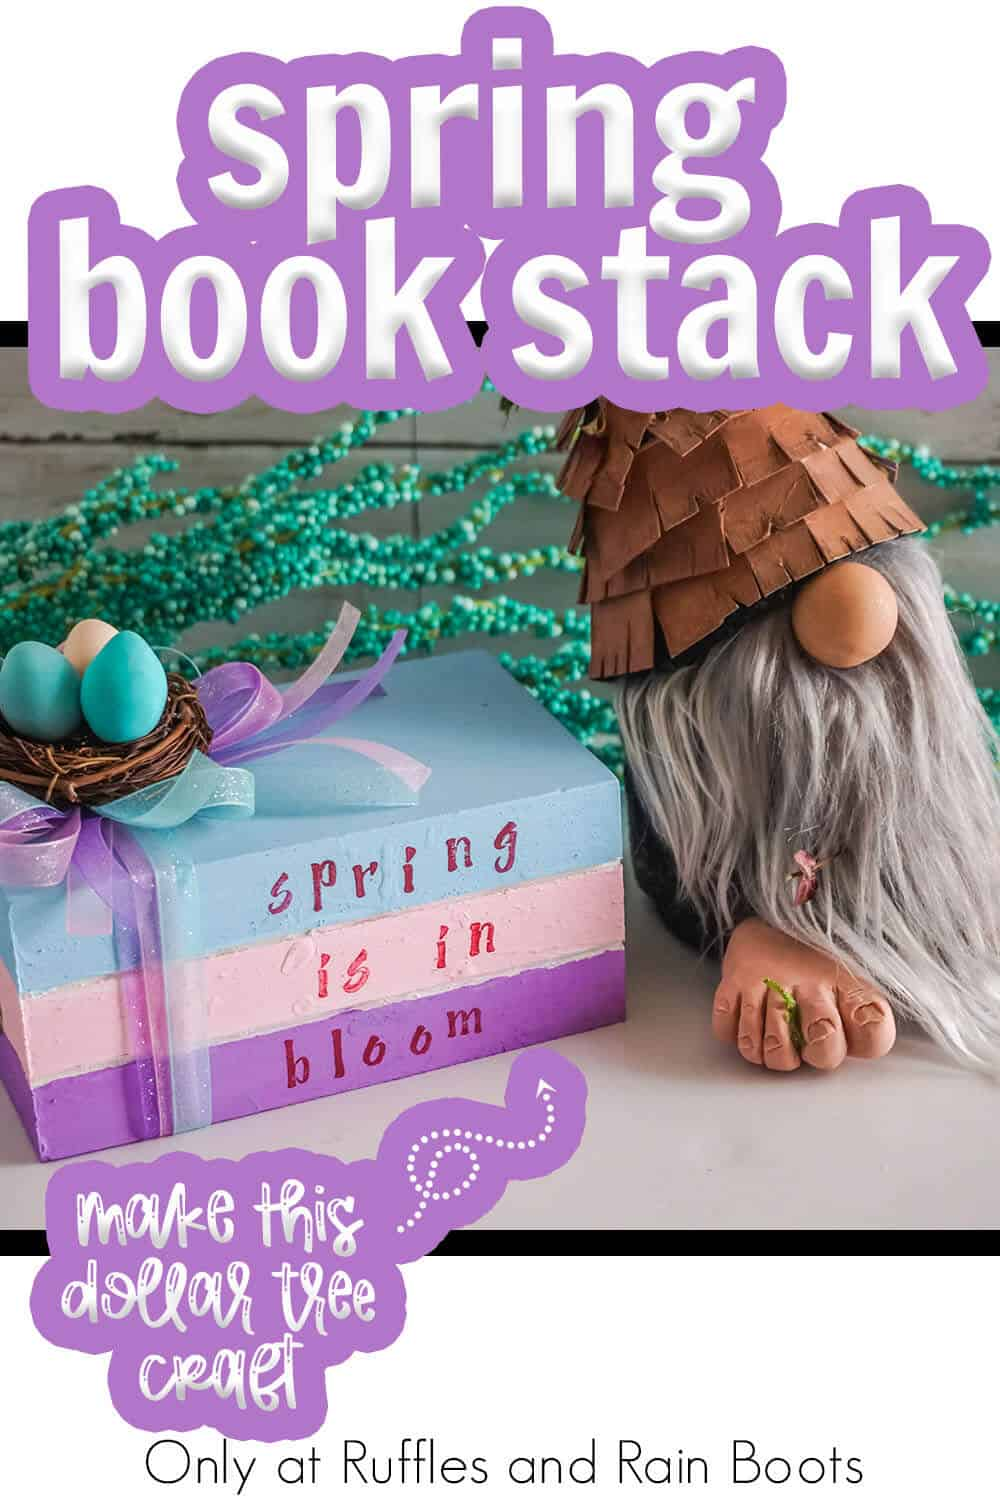 dollar tree wood crate craft farmhouse book stack for spring with text which reads spring book stack make this dollar tree craft